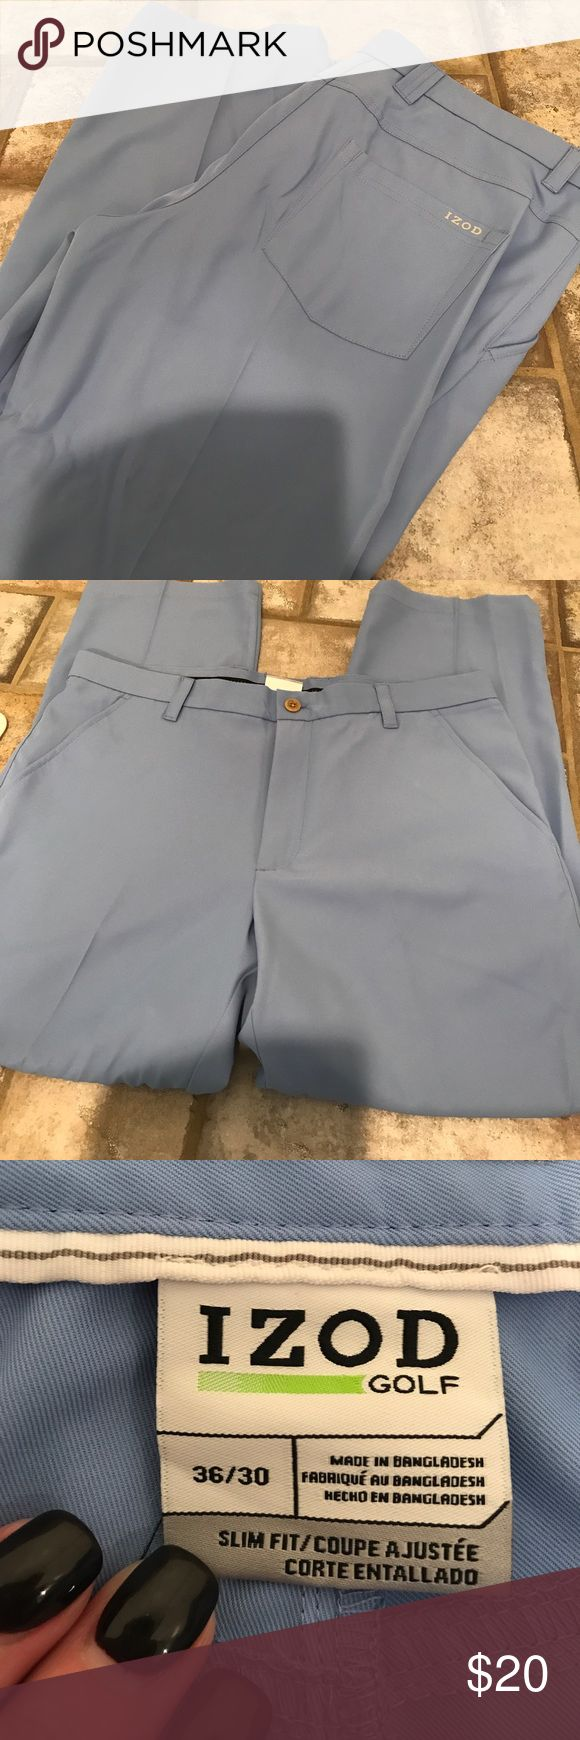 Izod golf pants in baby blue New without tags I thought golf pants baby blue in color.   never worn Izod Pants